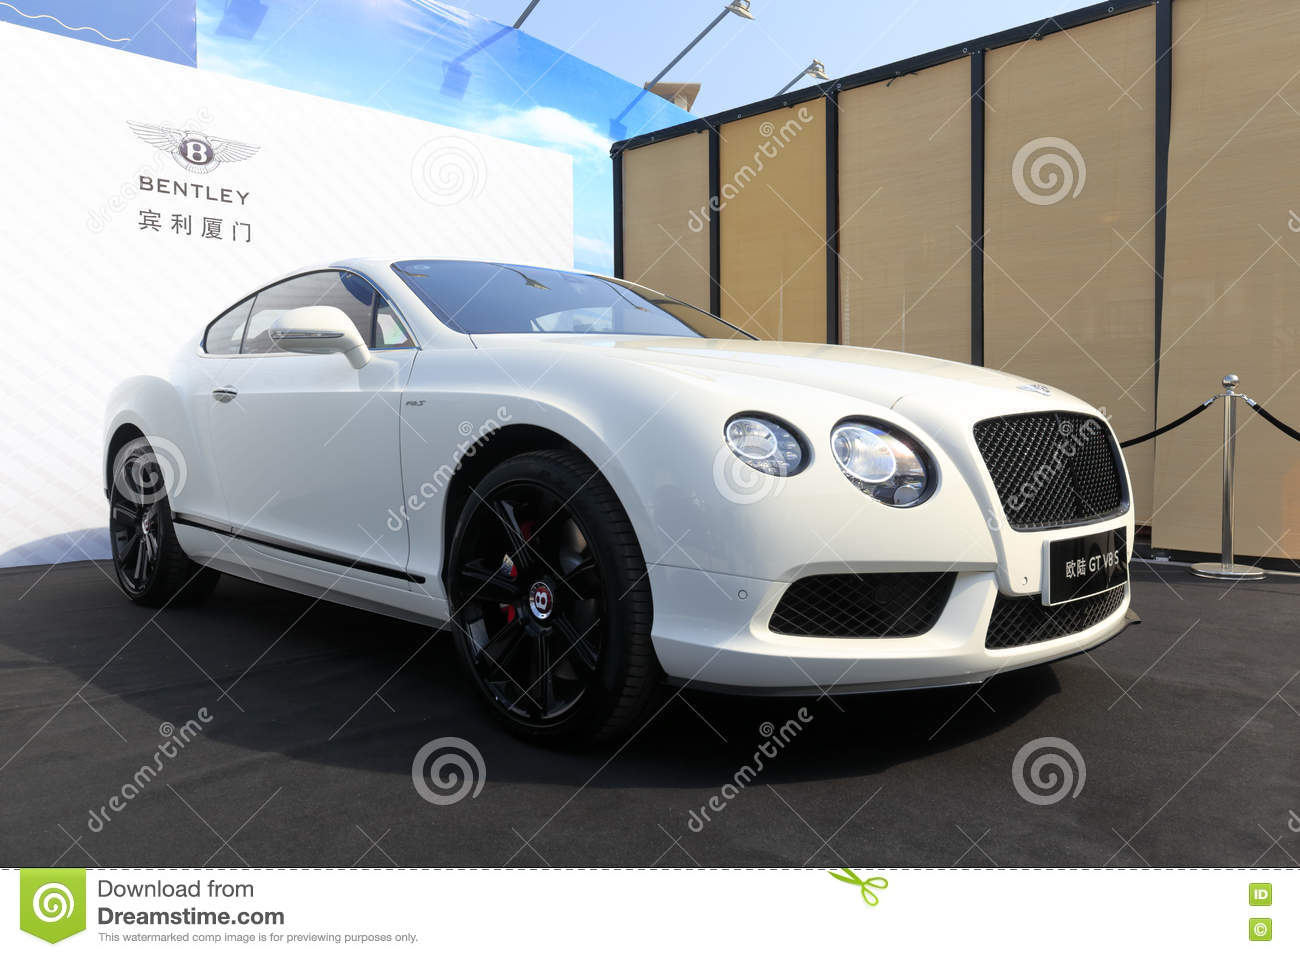 White Bentley Limousine Editorial Stock Image Image Of Continental 74913734